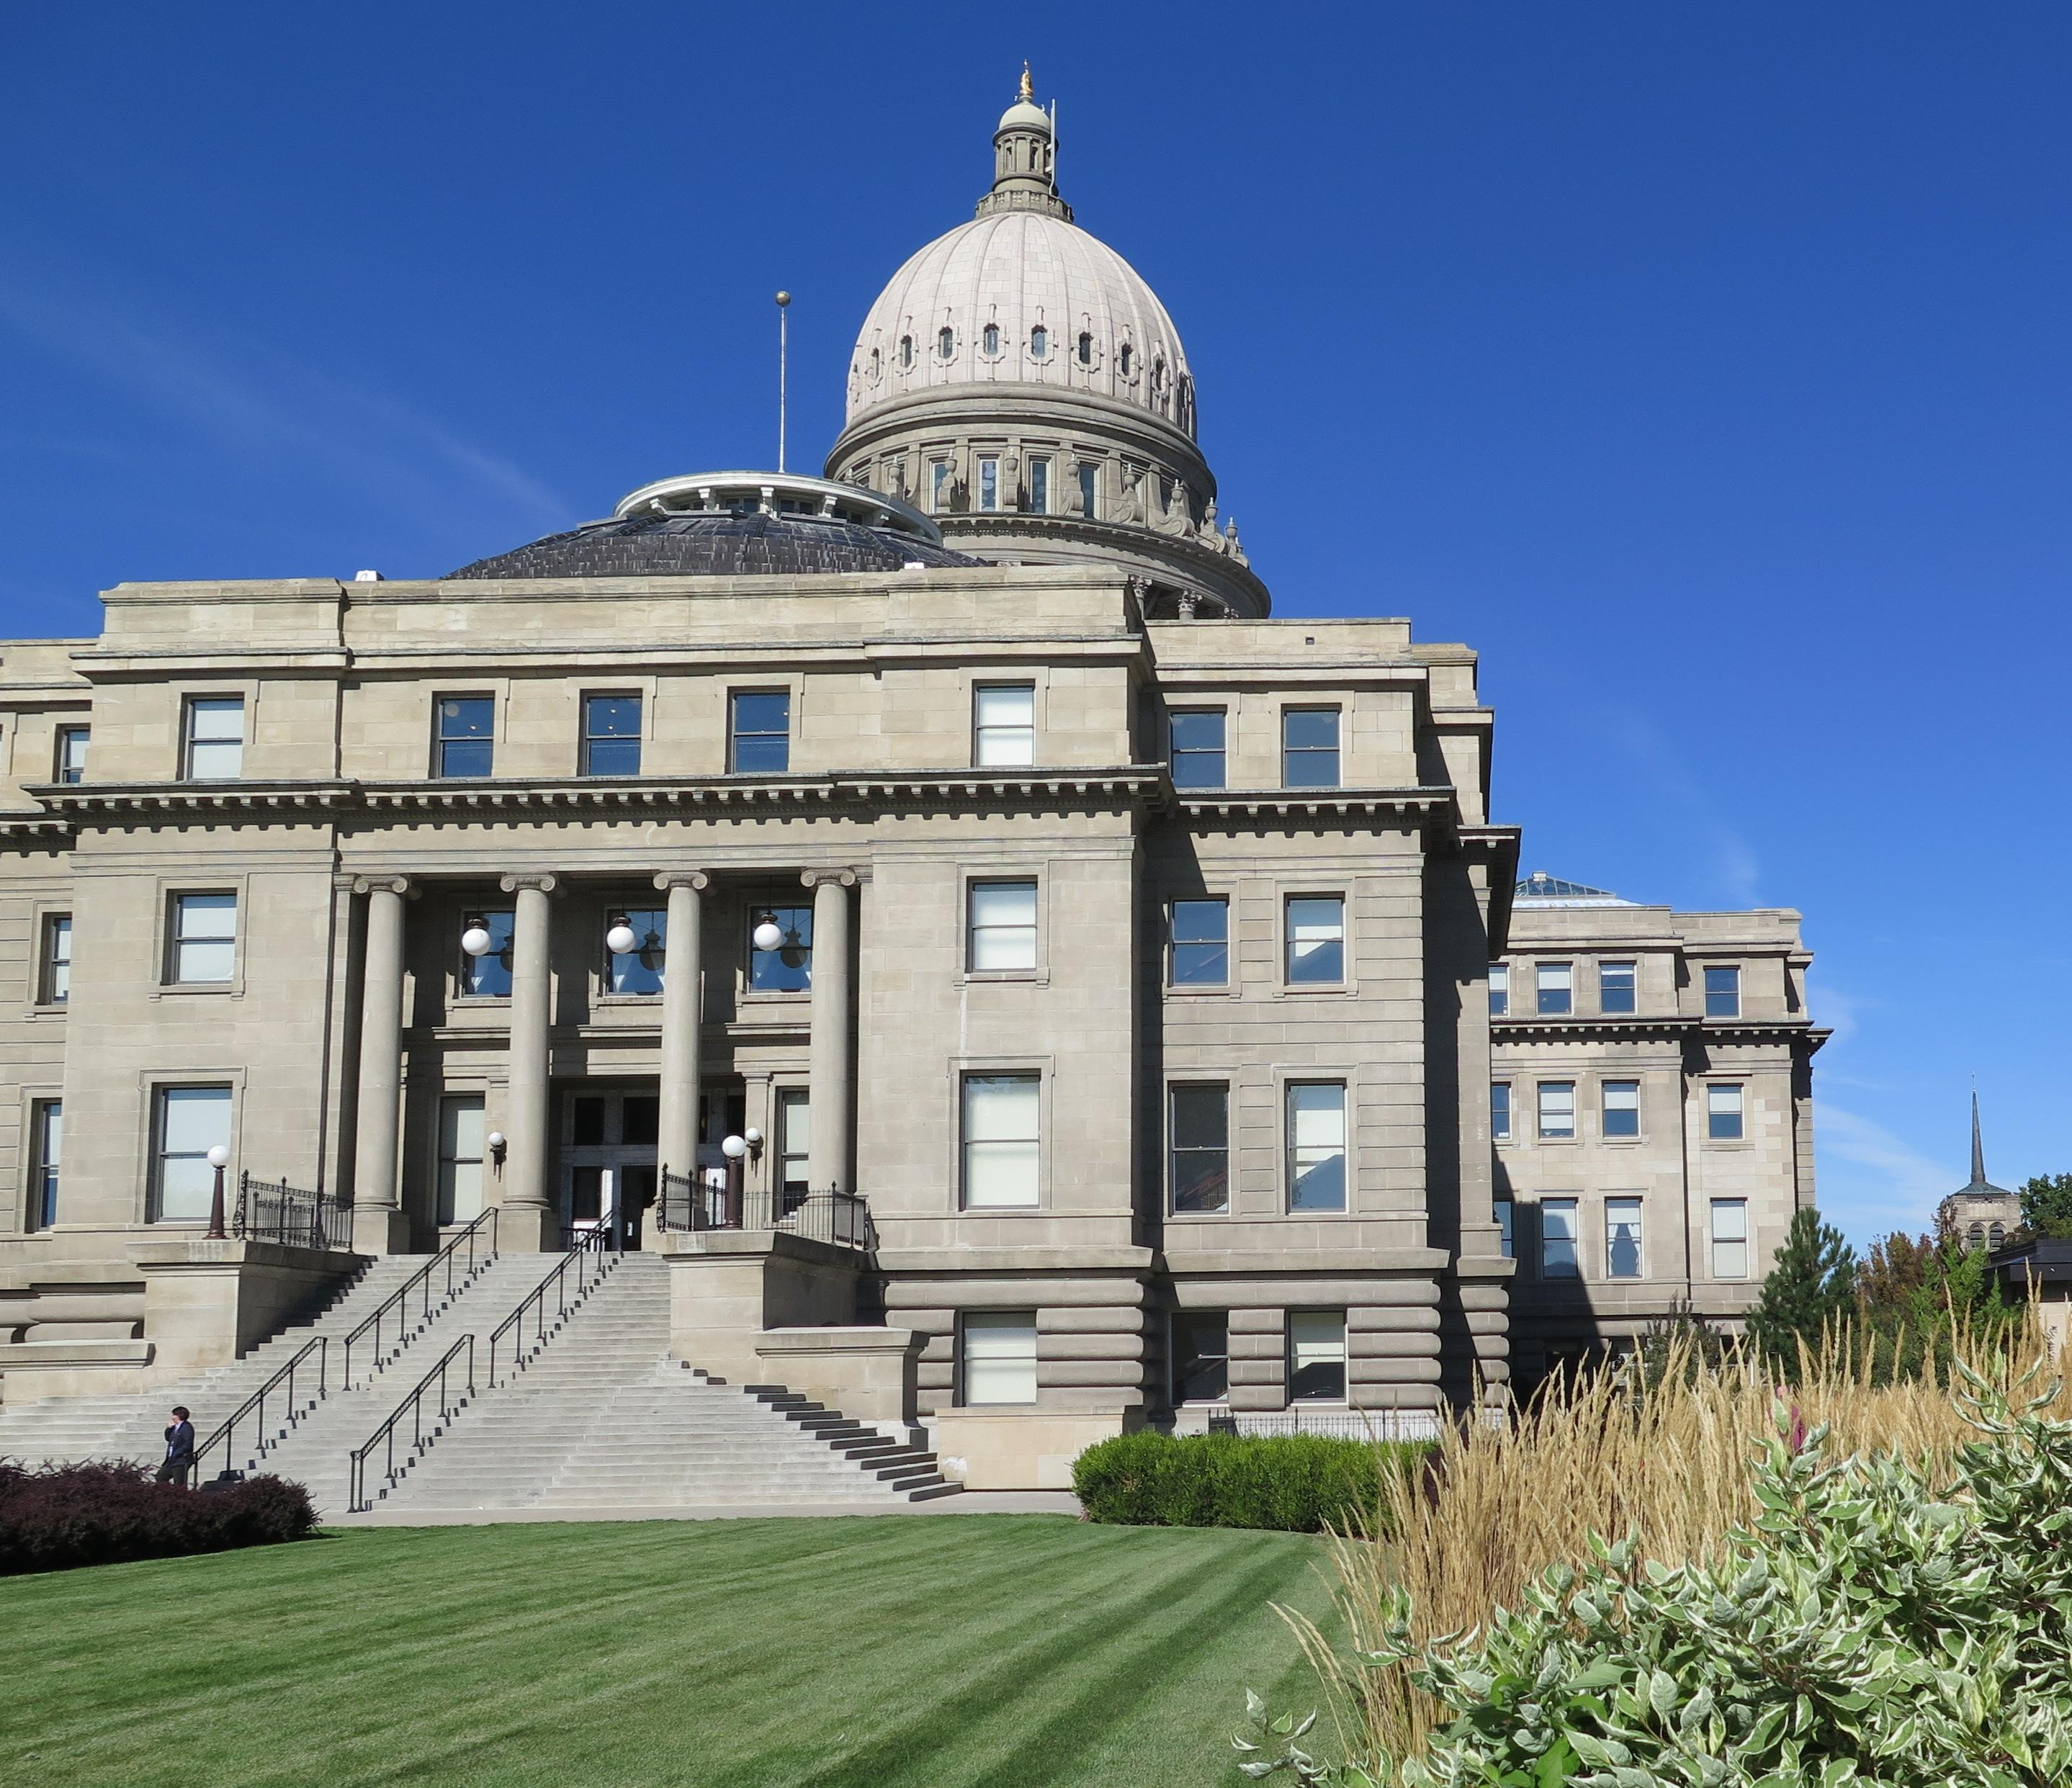 Plans for conservative 'Freedom Caucus' in Idaho House on ... on texas gulf coast houses, central michigan houses, the pennsylvania houses, morrilton houses, abruzzo houses, south texas houses, west north central houses, kingman houses, large straw bale houses, pacific northwest region houses, elko houses, yosemite houses, bastrop texas houses, florissant houses, blue dome houses, sindh houses, el segundo houses, university of oregon houses, chiapas houses, michoacan houses,